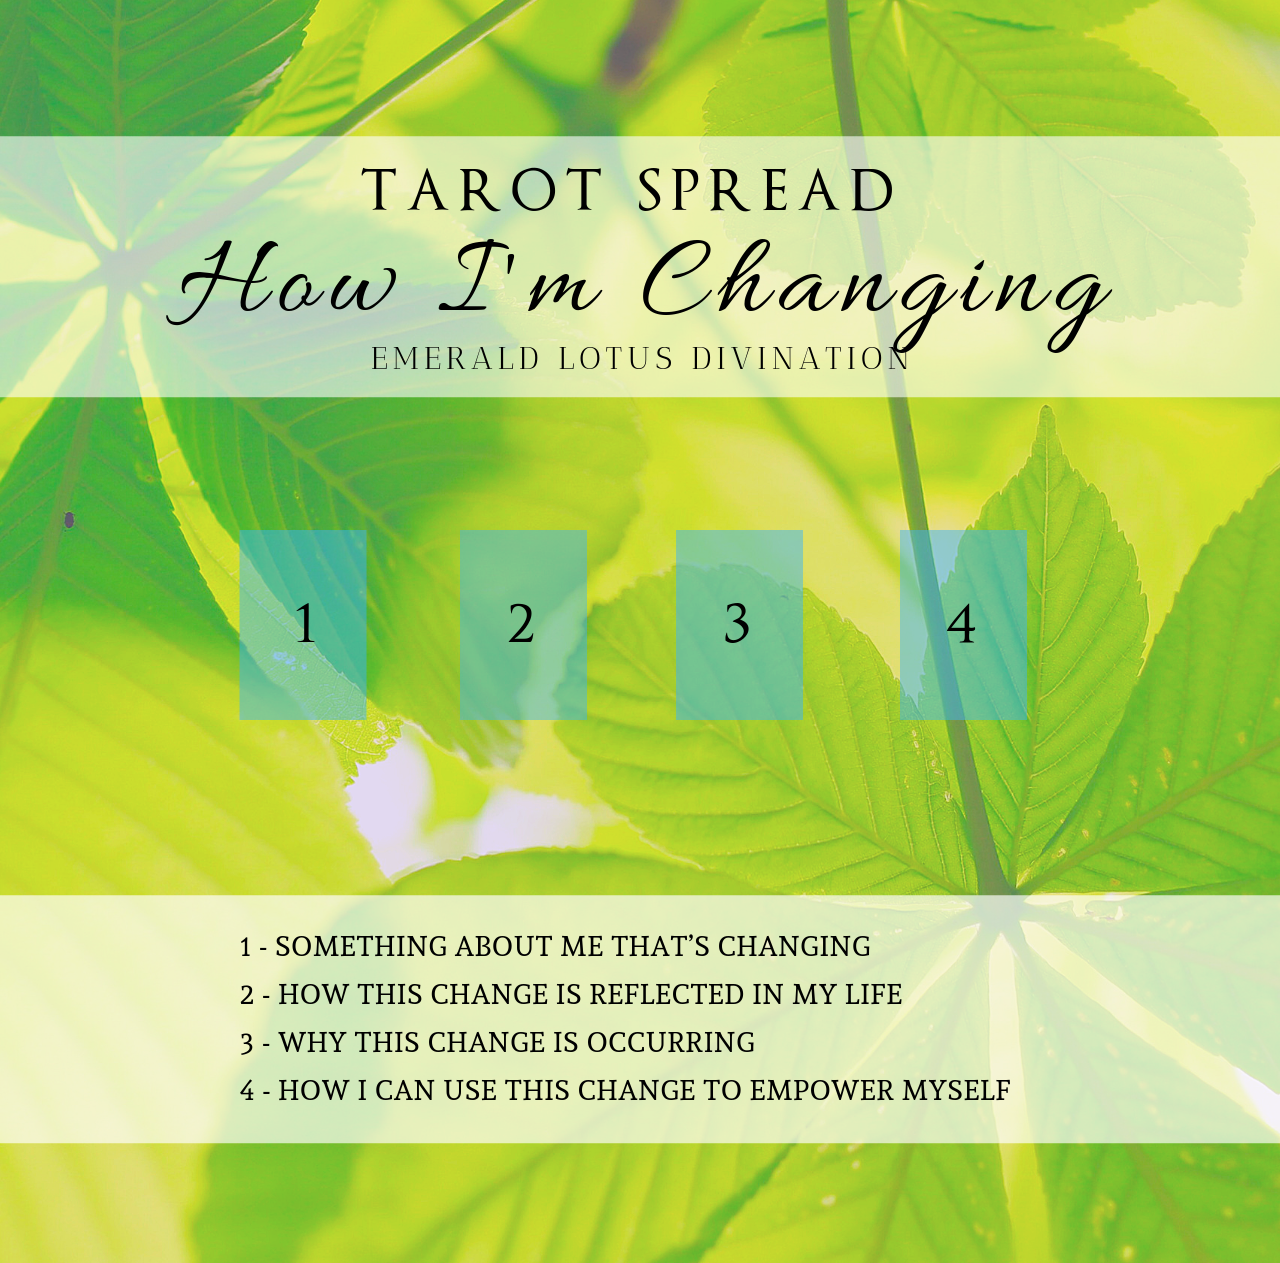 How-Im-Changing-Emerald-Lotus.png